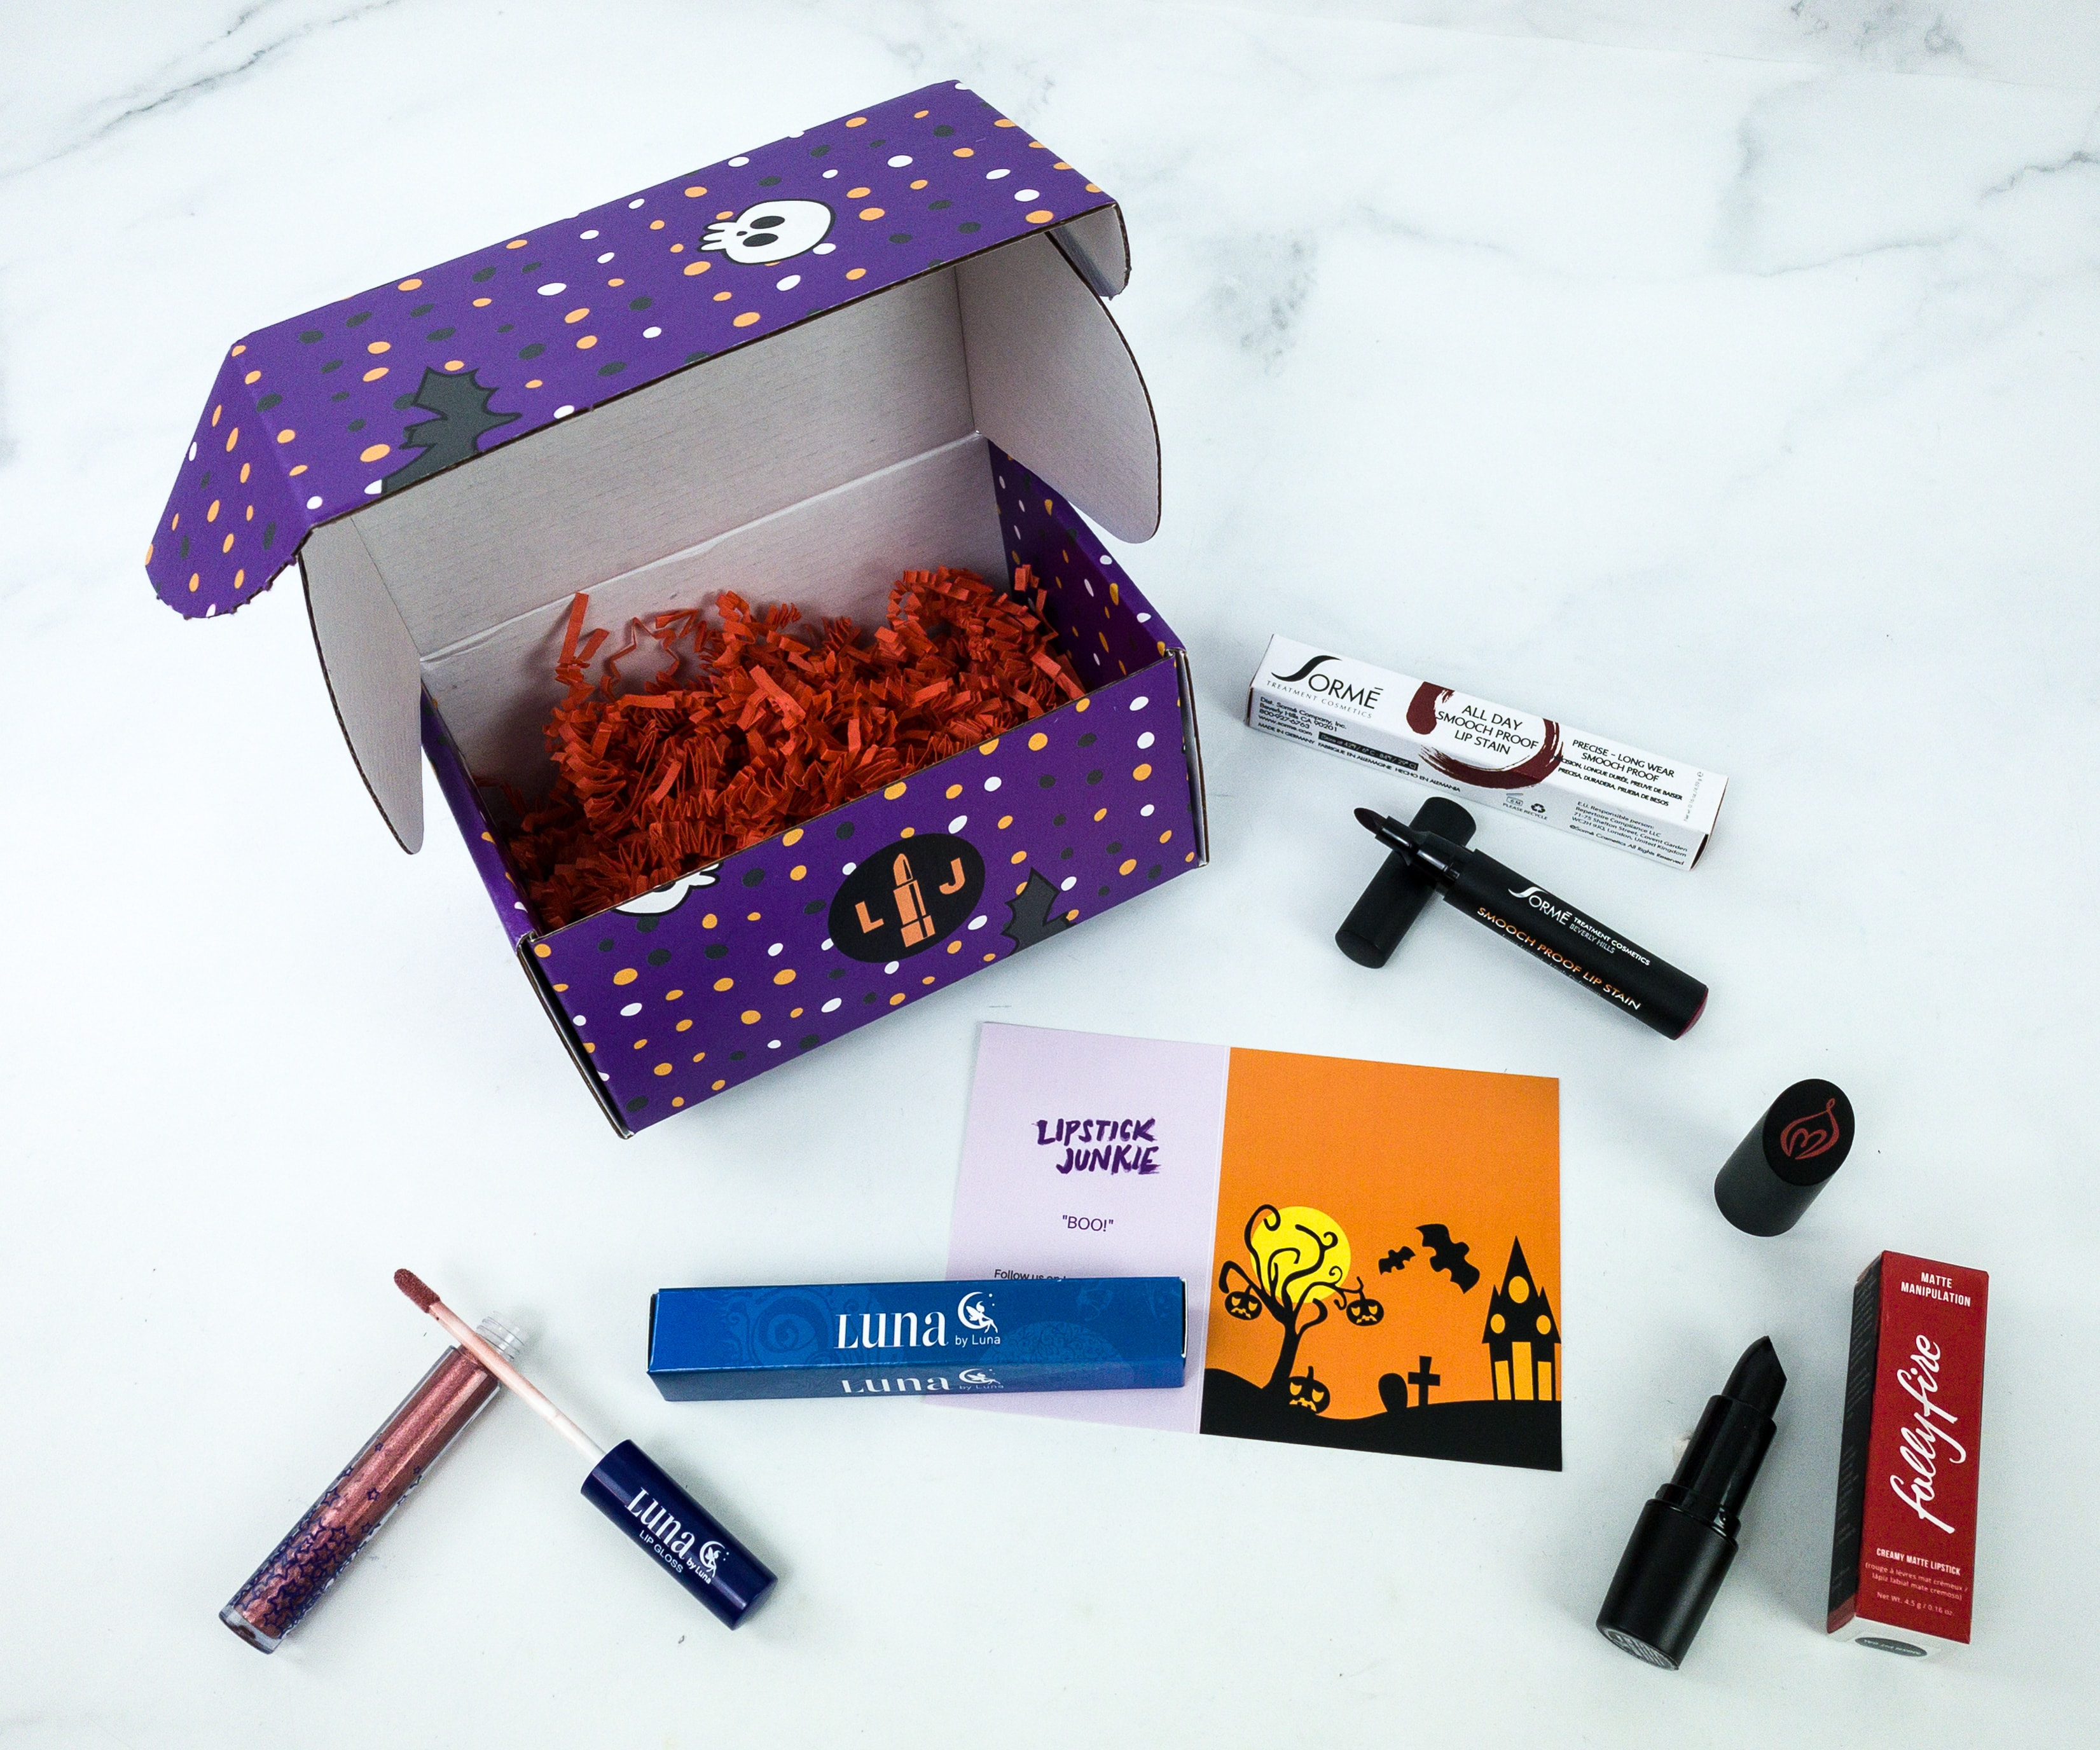 Lipstick Junkie October 2019 Subscription Box Review + Coupon!